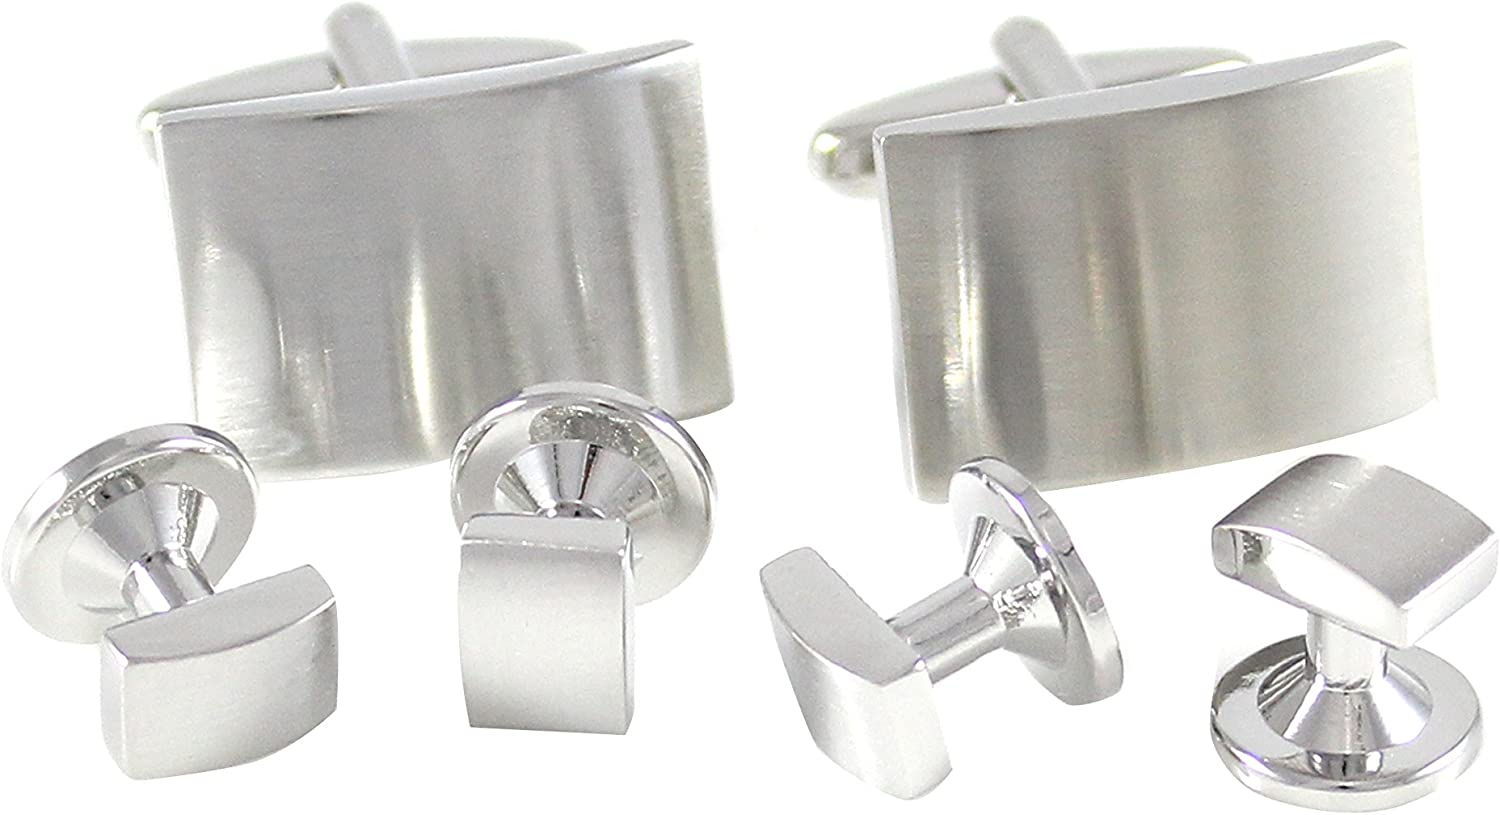 MENDEPOT Classic Rhodium Plated Brushed Curved Rectangle Formal Wear Shirt Cuff Link and Studs Set with Box